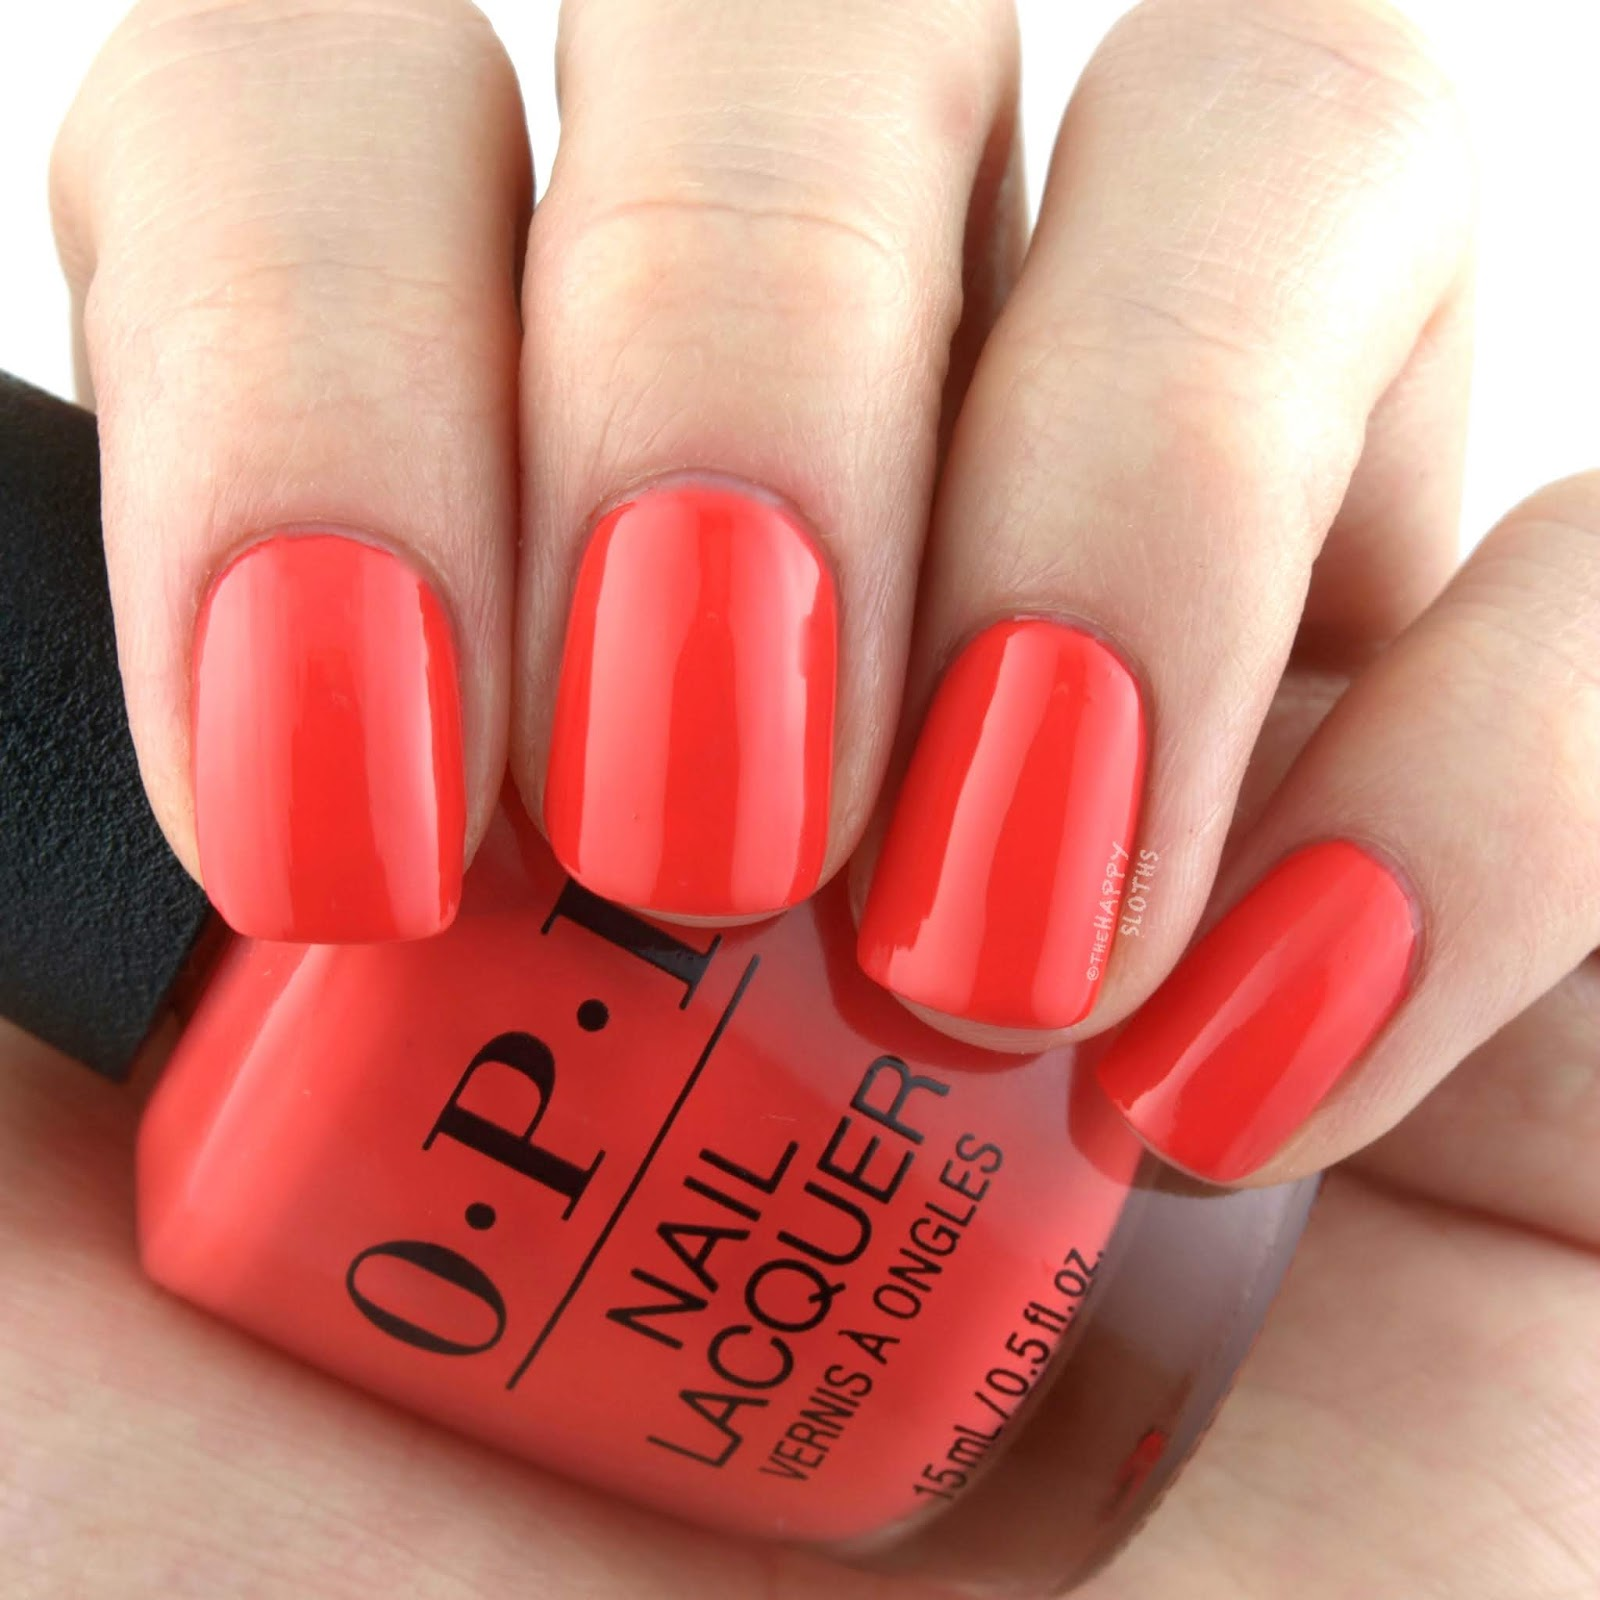 OPI Spring 2019 Tokyo Collection | Tempura-ture is Rising: Review and Swatches